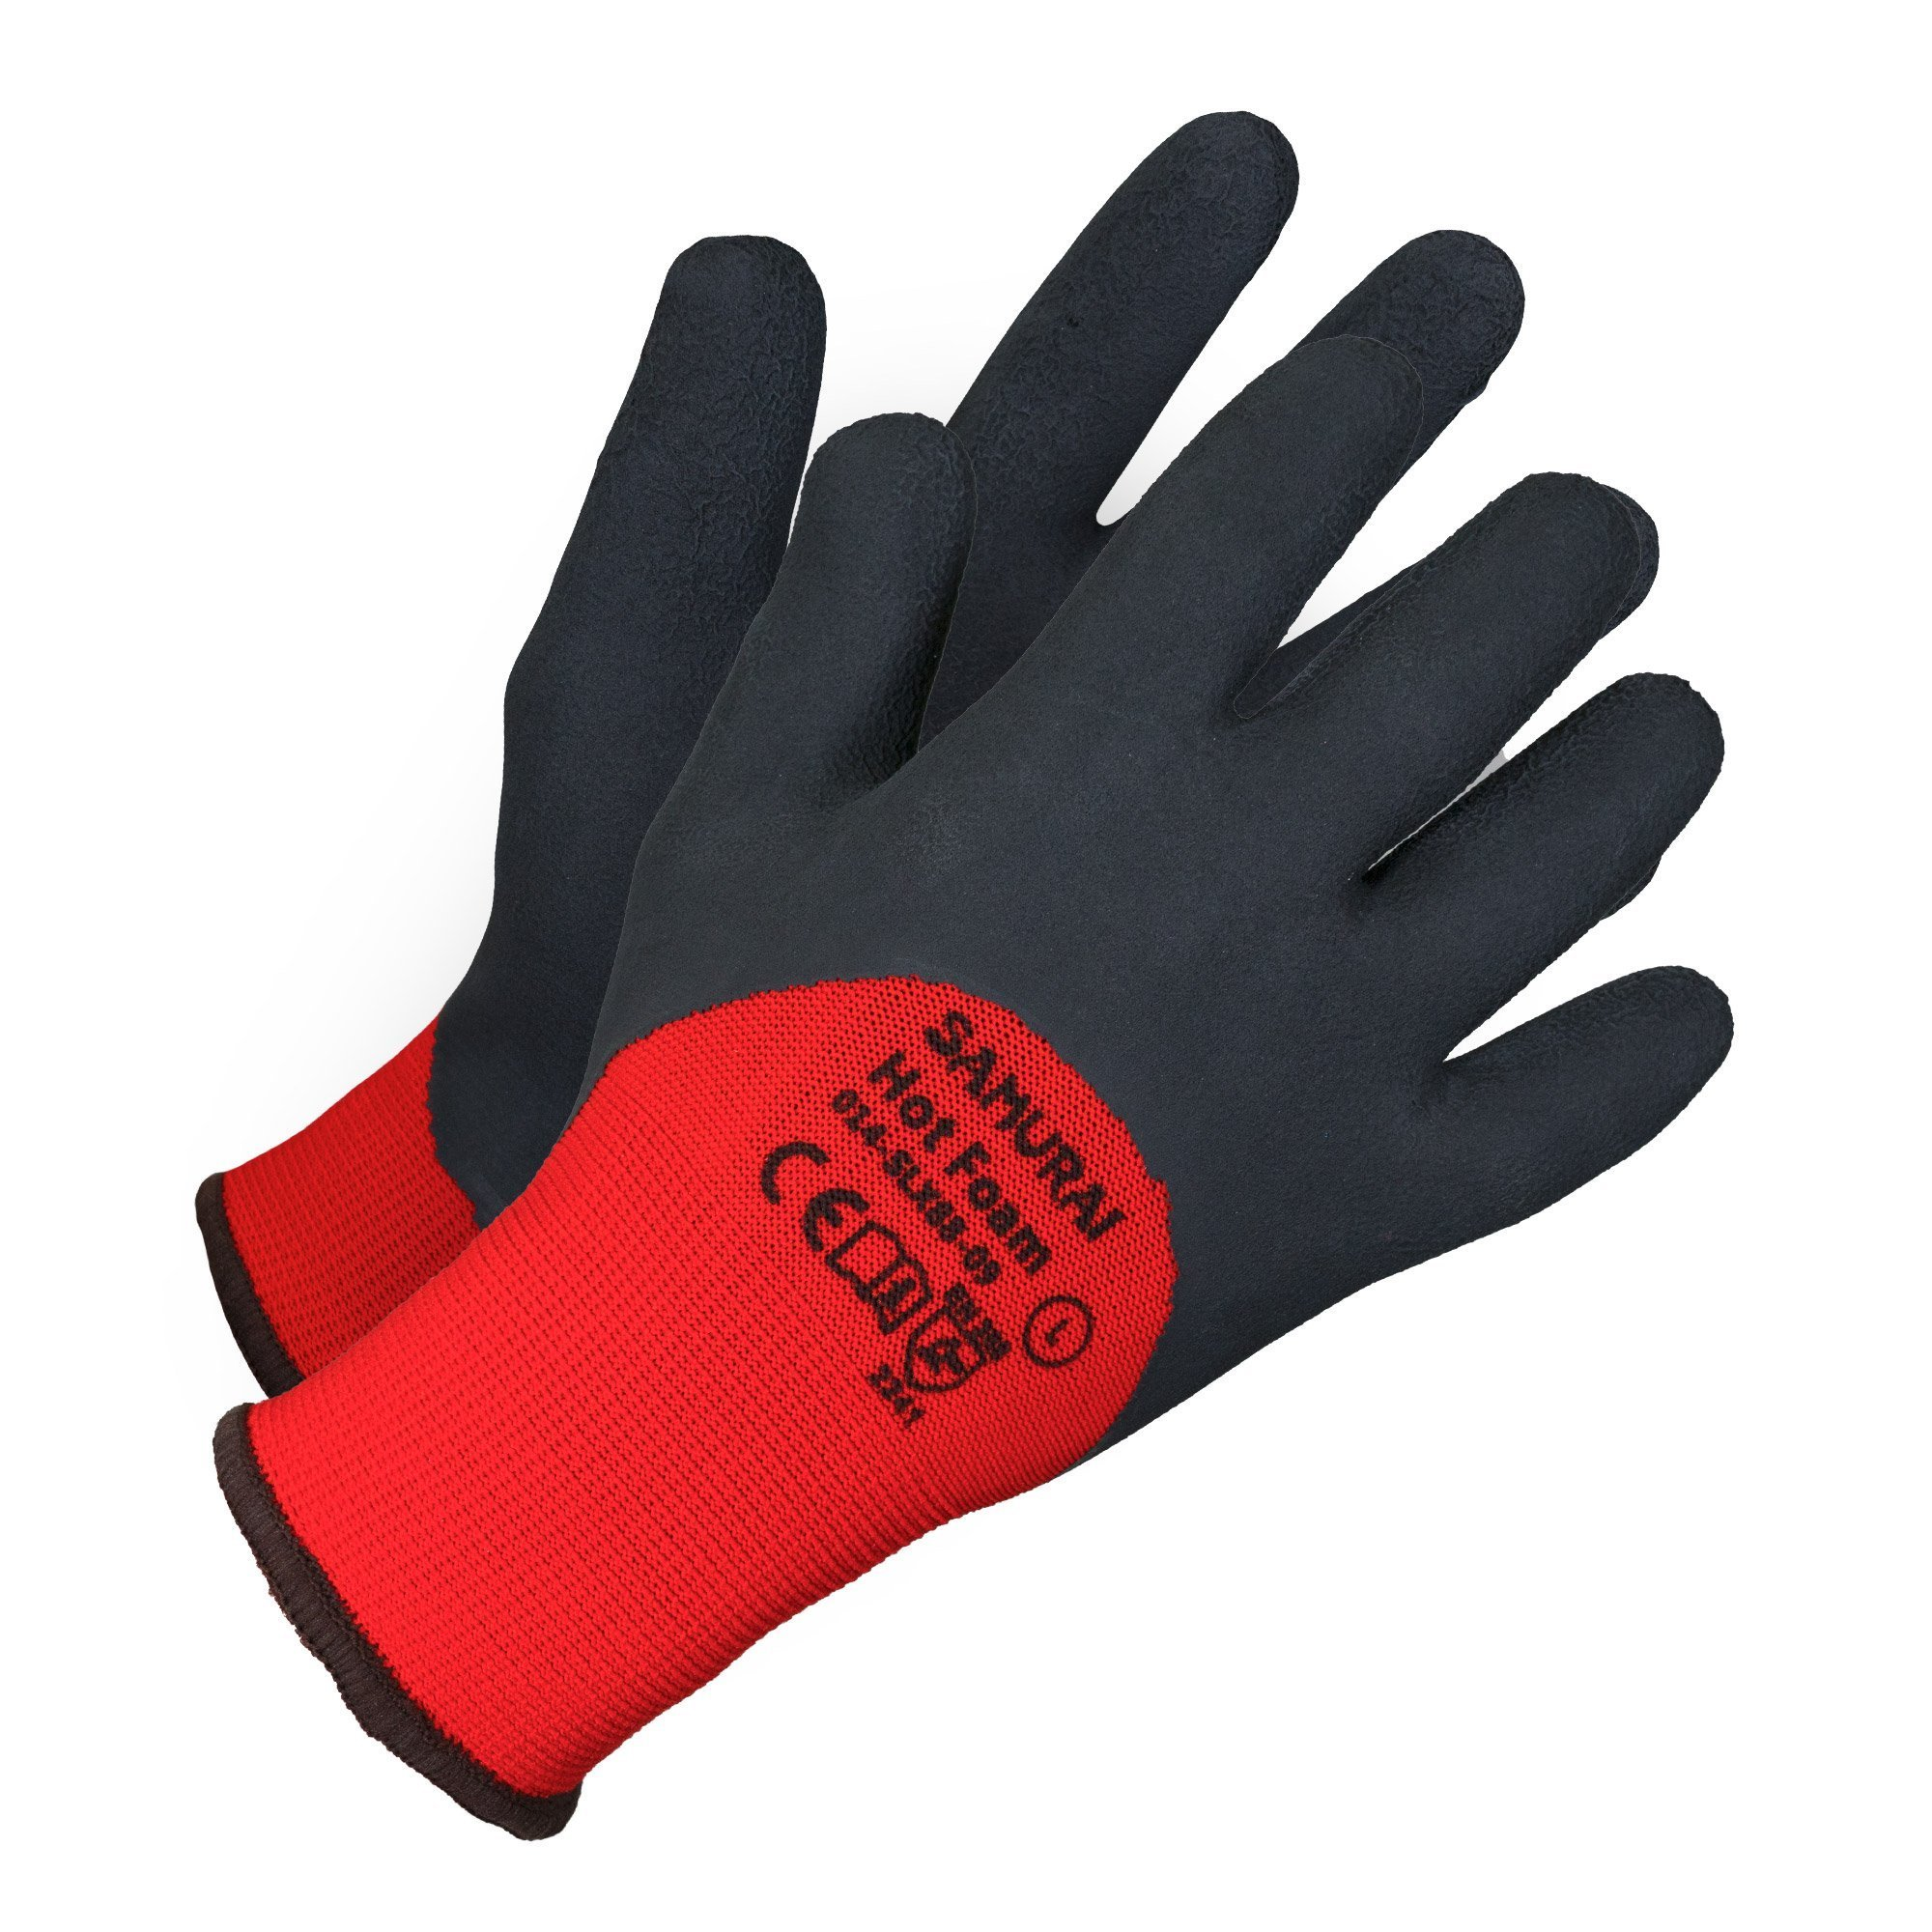 Gloves - Samurai Hot Foam - Insulated - Red - XL